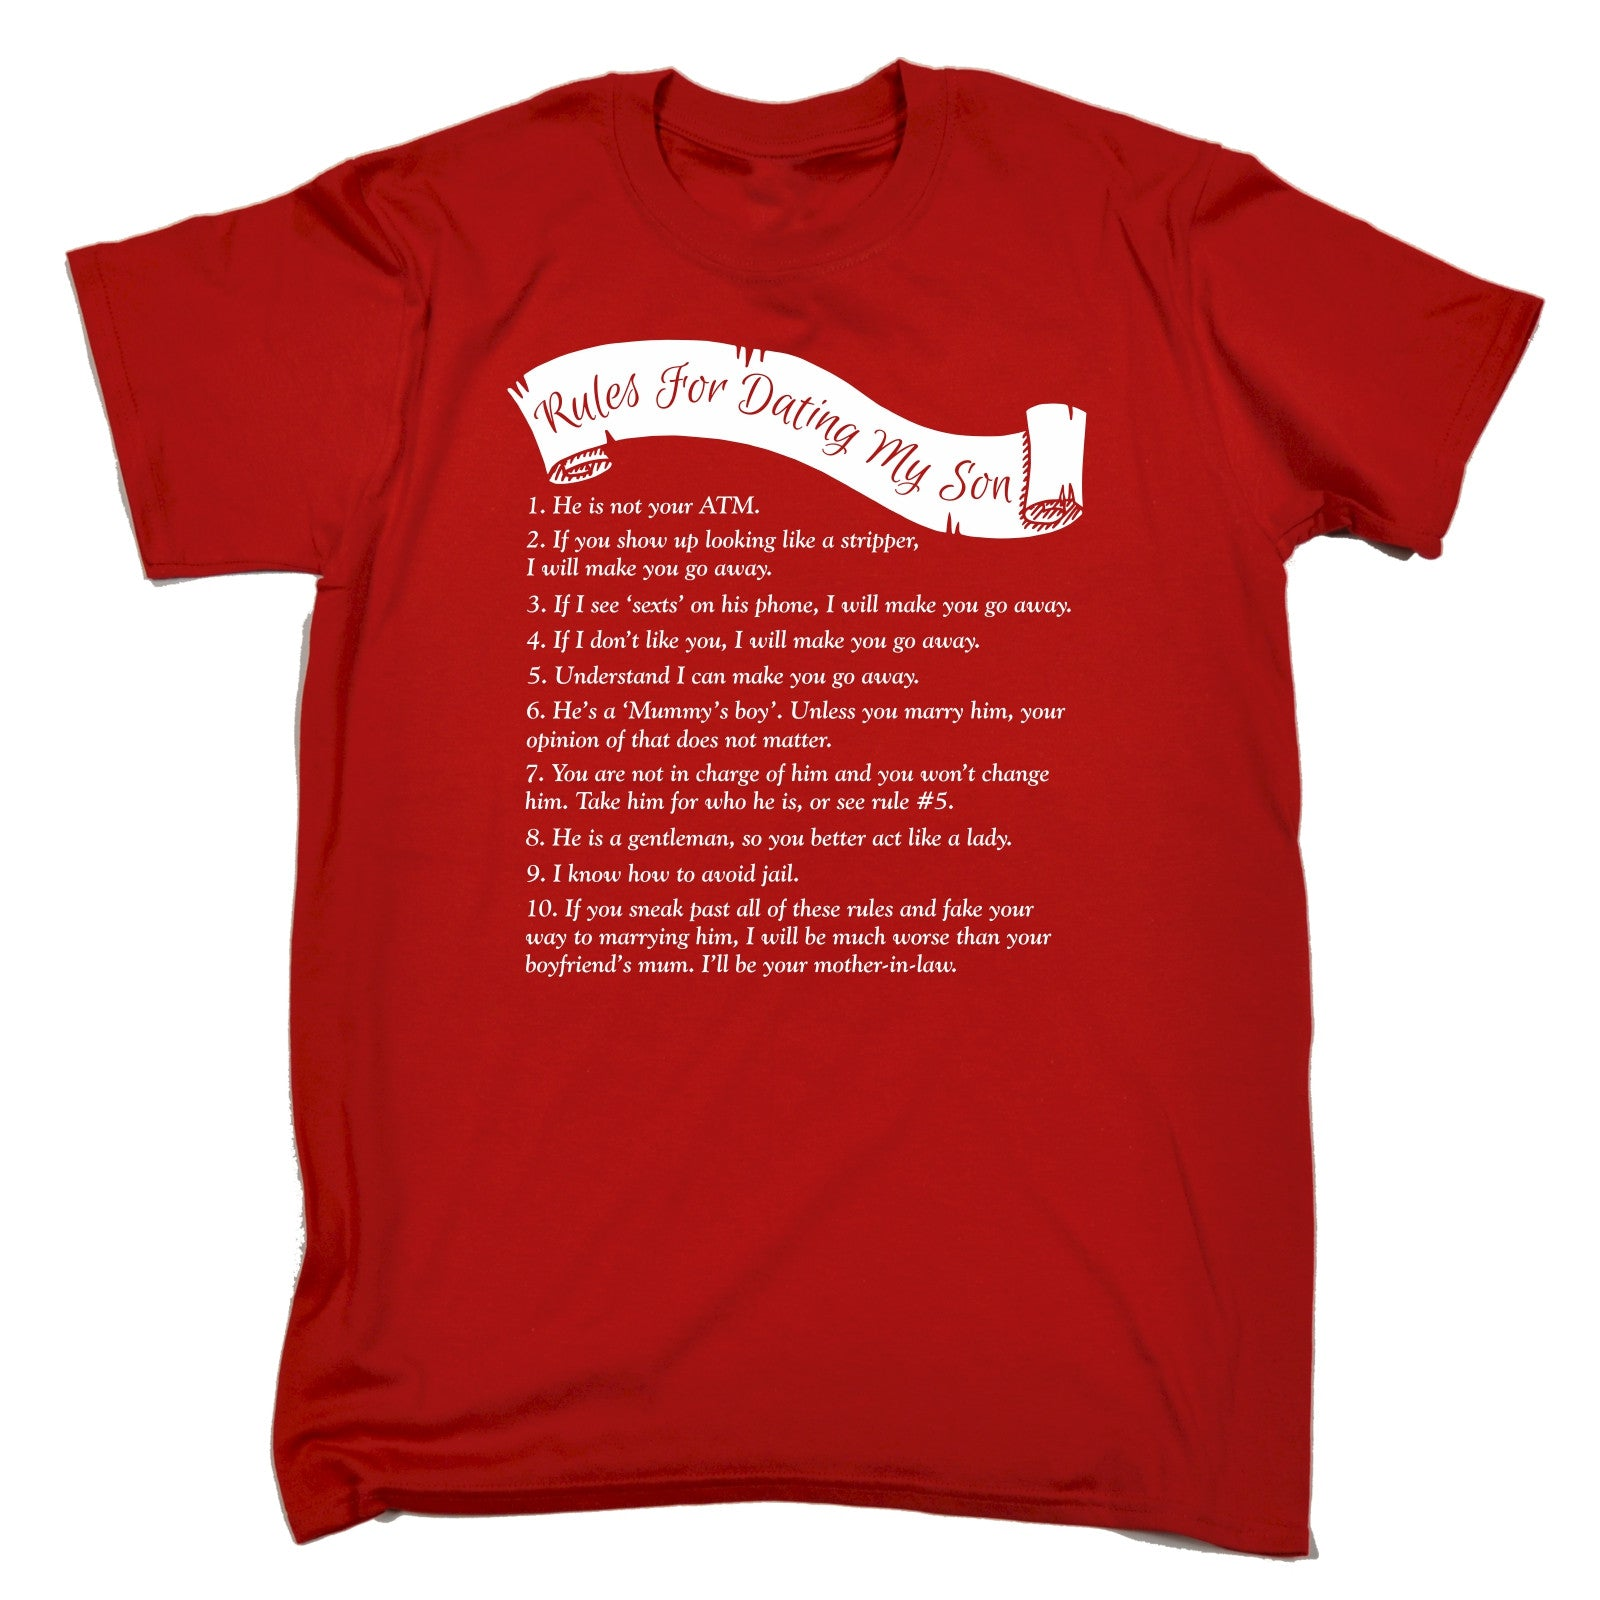 Rules of dating my son shirt